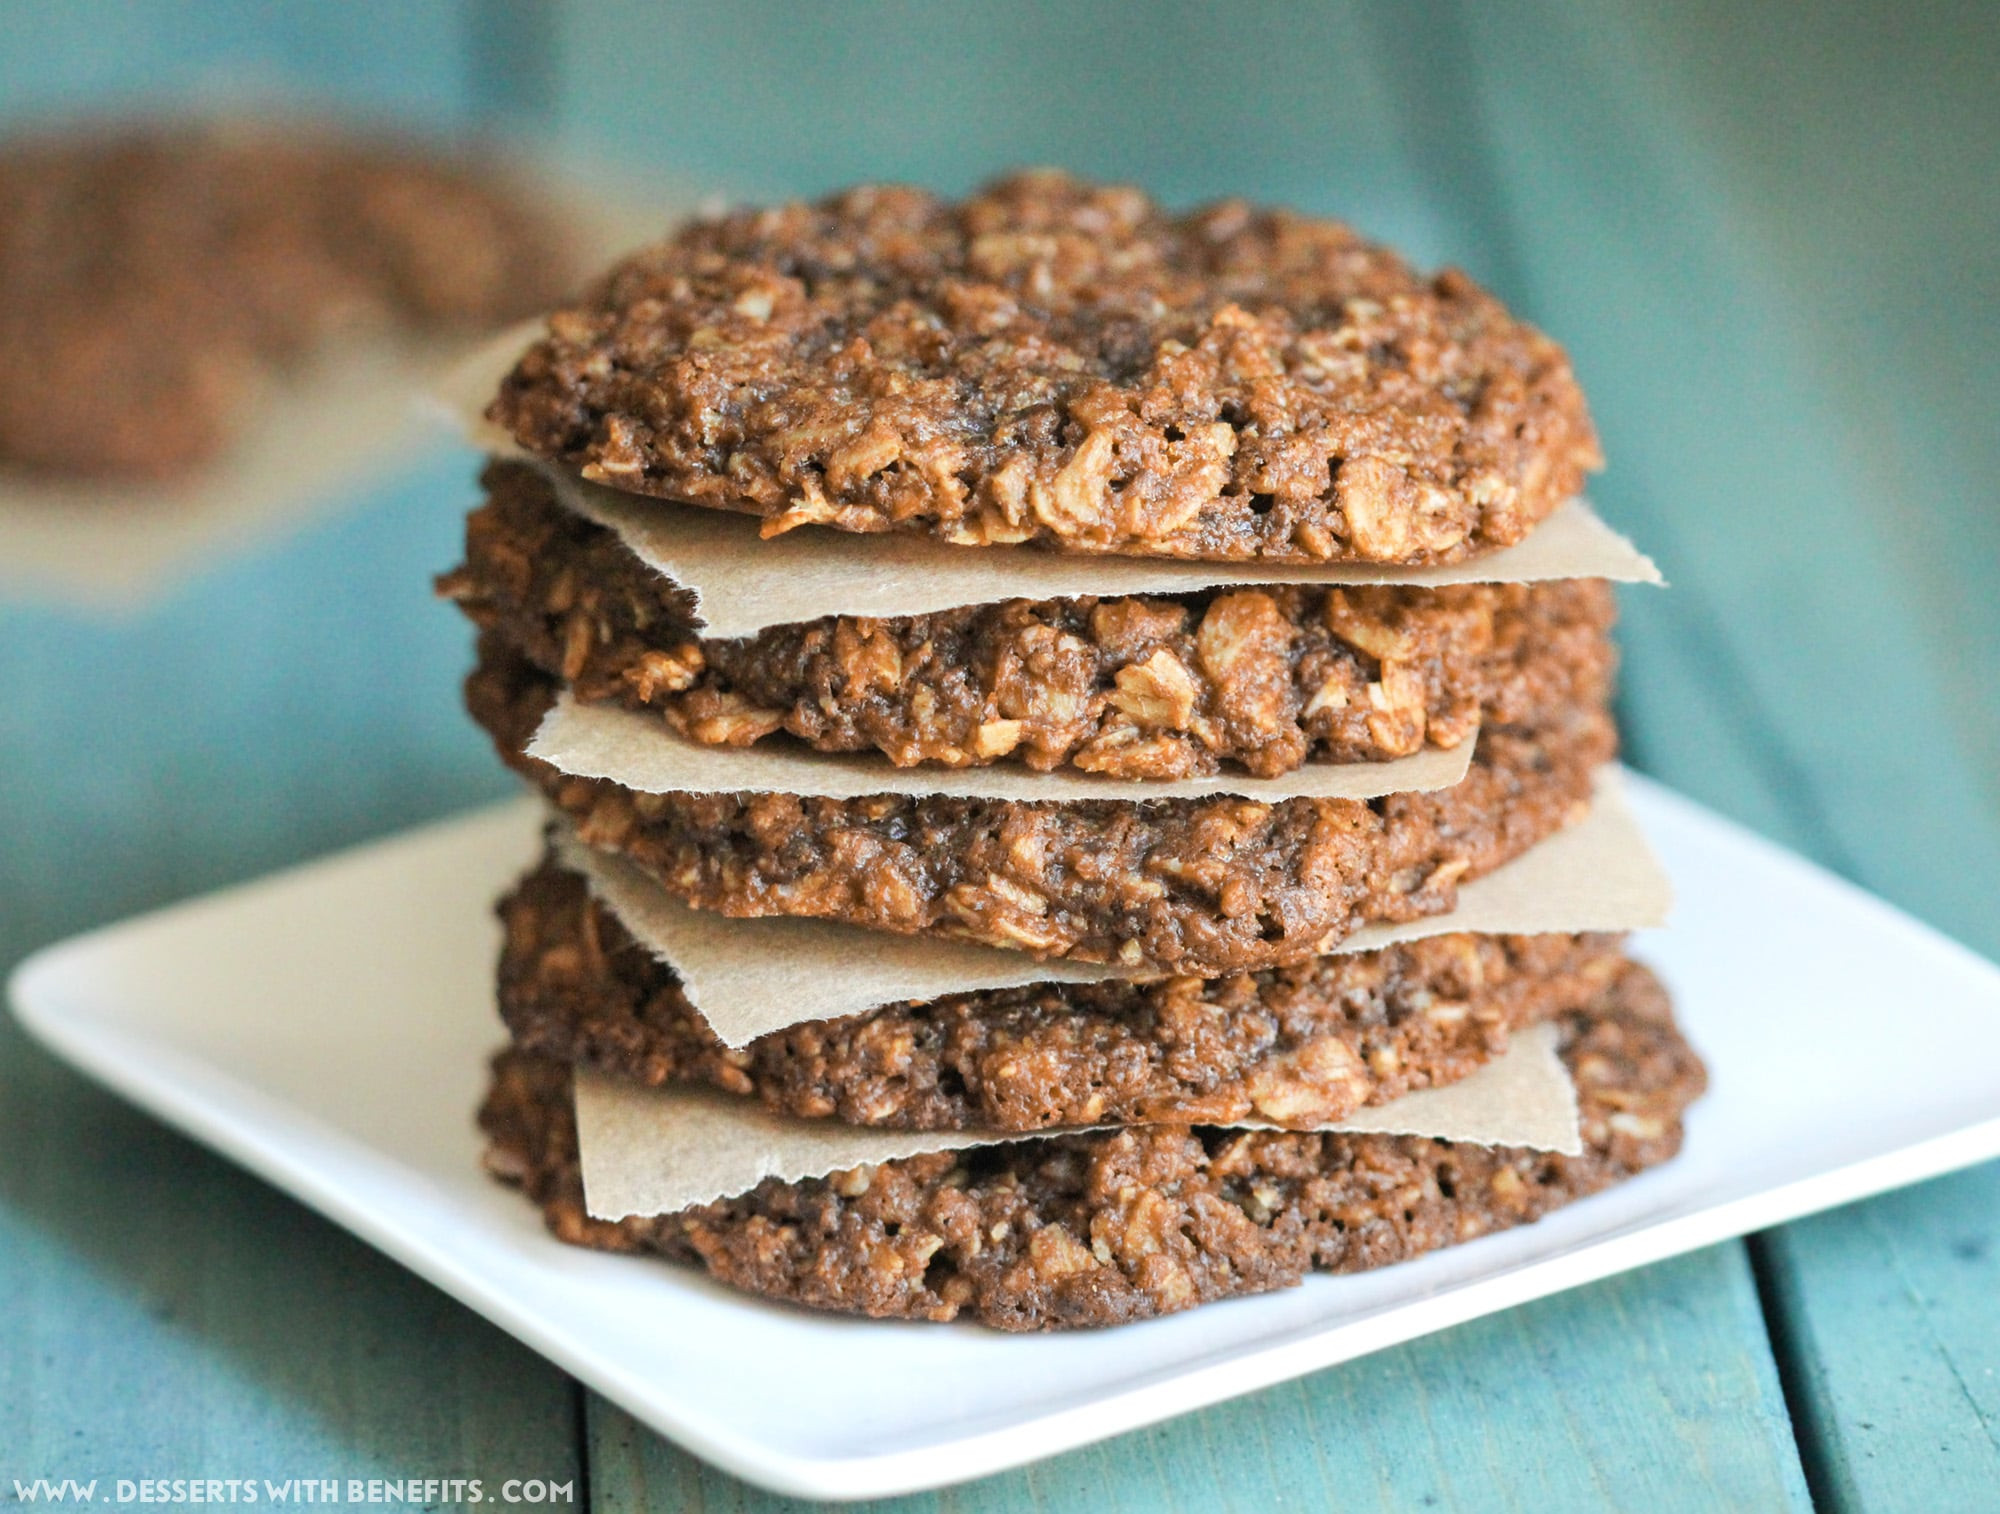 Healthy Peanut Butter Oatmeal Cookies  Healthy Chewy Peanut Butter Oatmeal Cookies recipe gluten